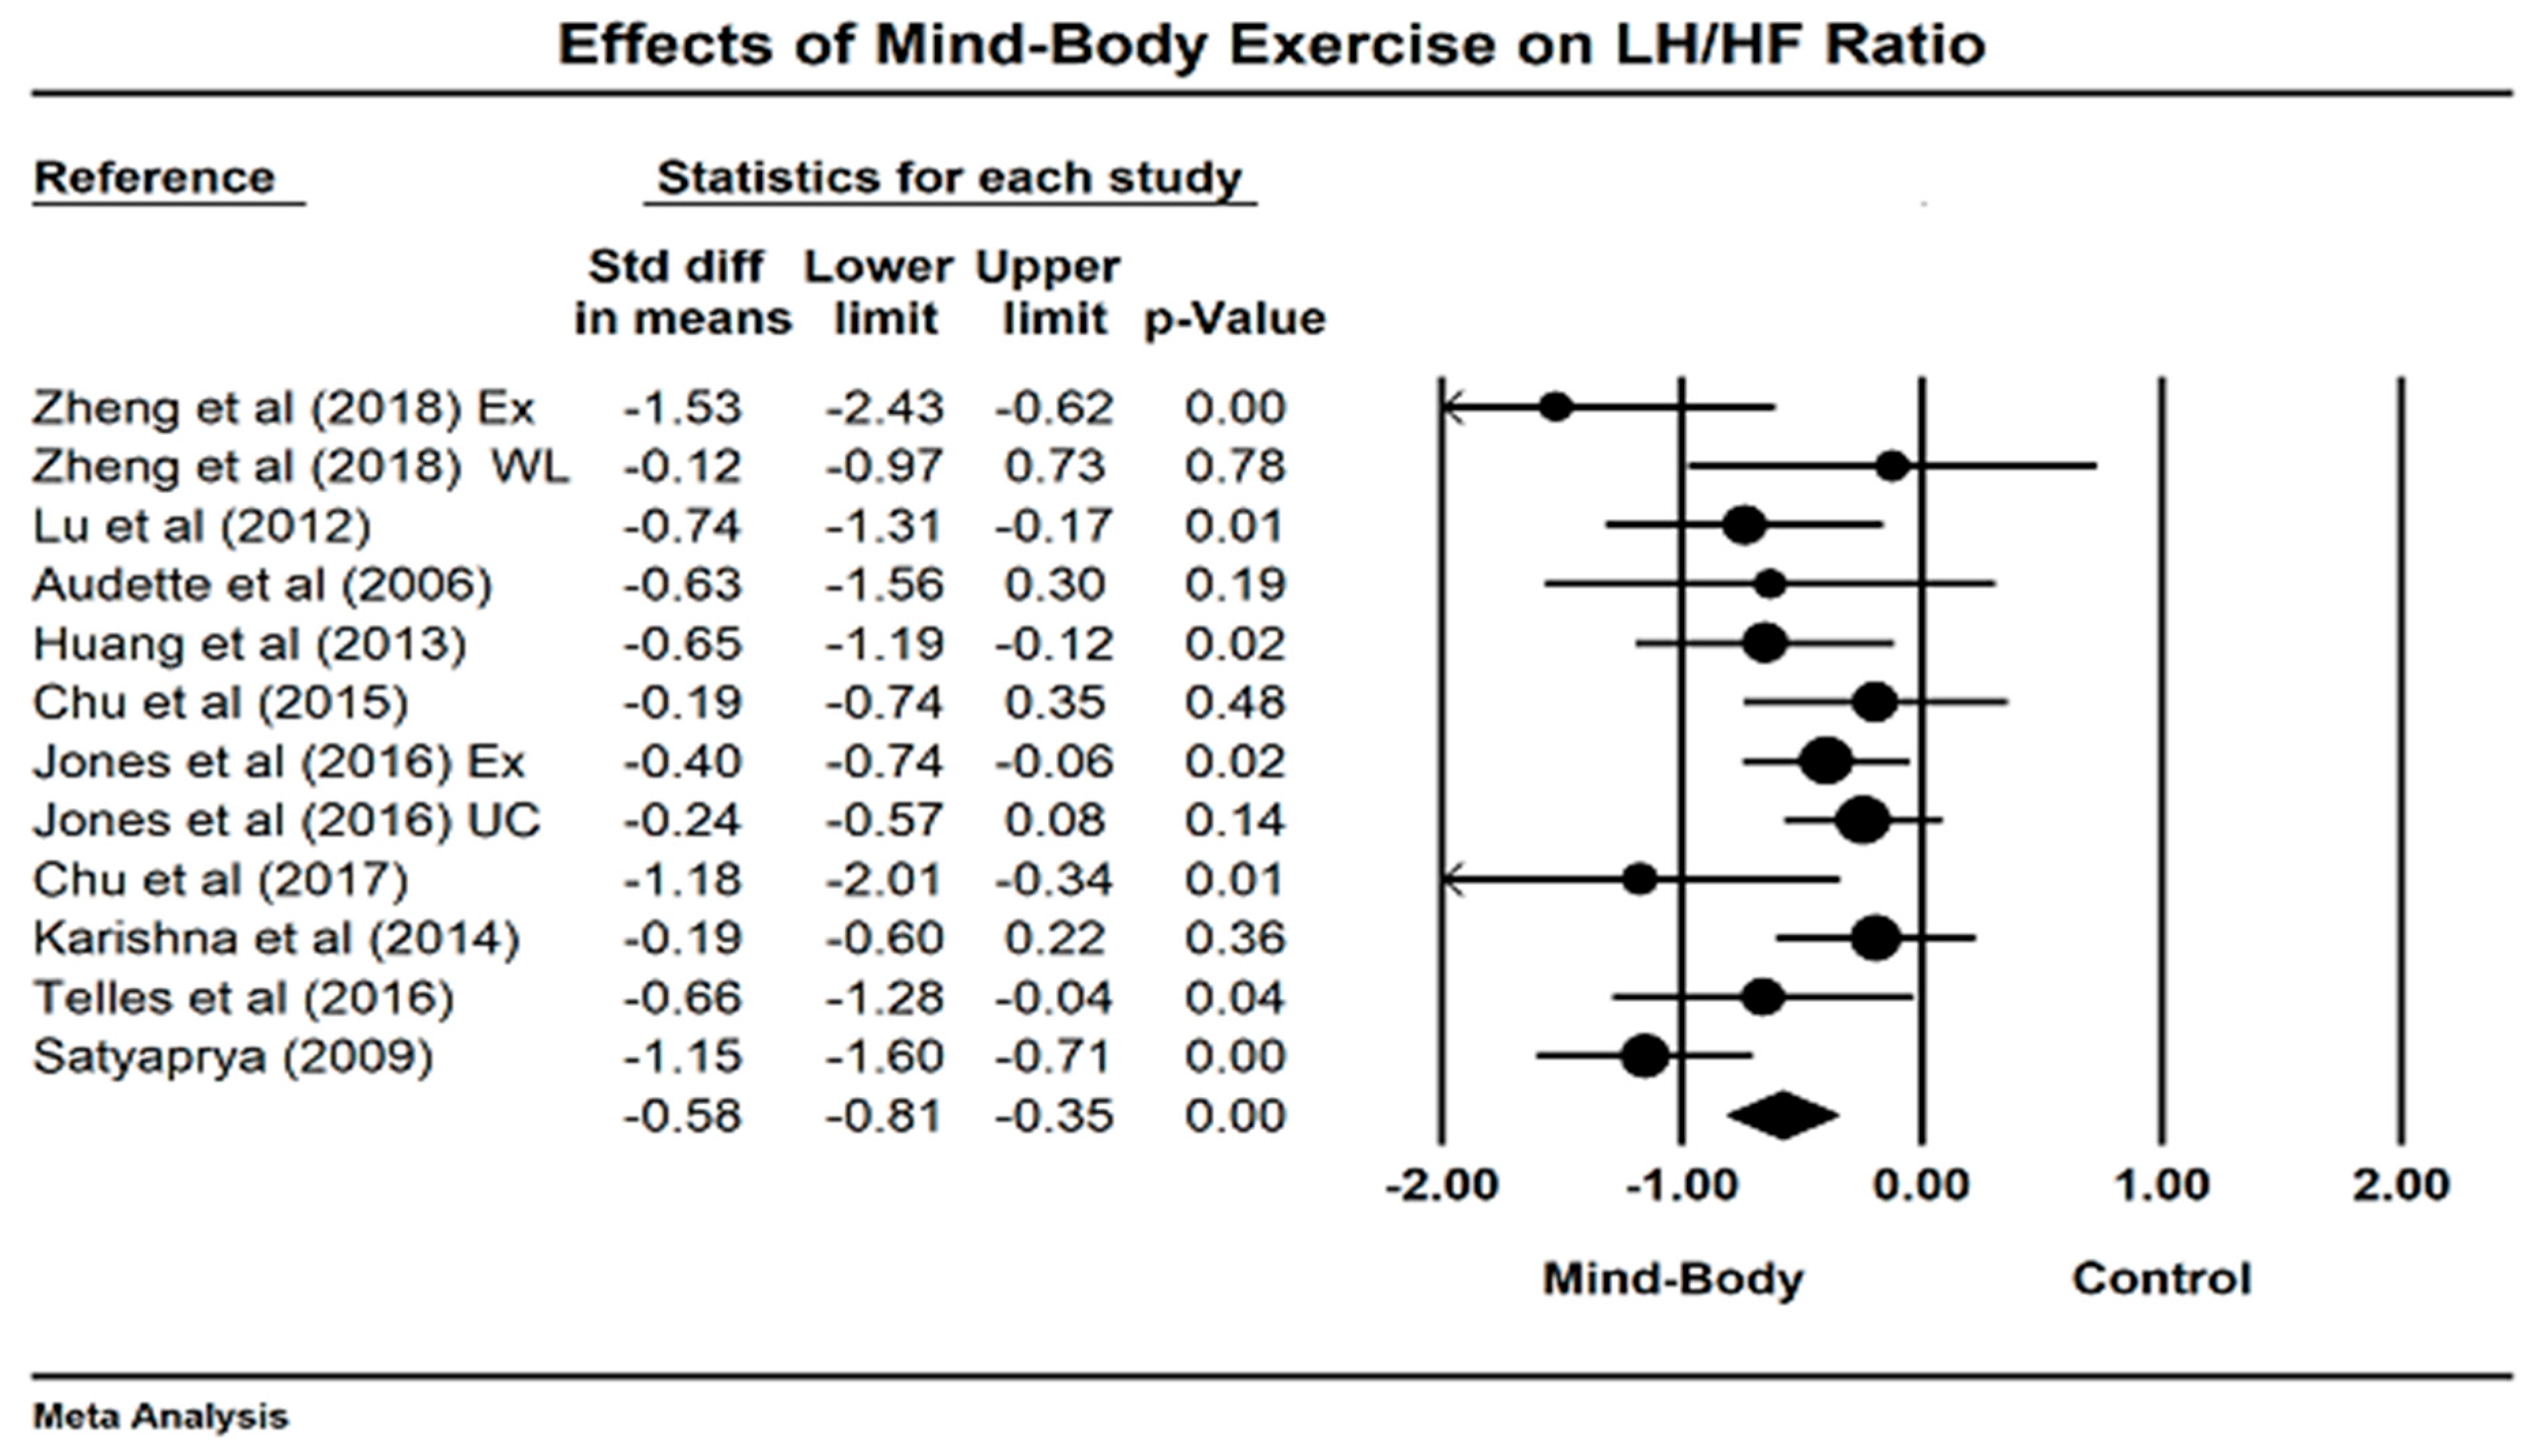 Jcm Free Full Text Effects Of Mind Body Exercises Tai Chi Yoga On Heart Rate Variability Parameters And Perceived Stress A Systematic Review With Meta Analysis Of Randomized Controlled Trials Html